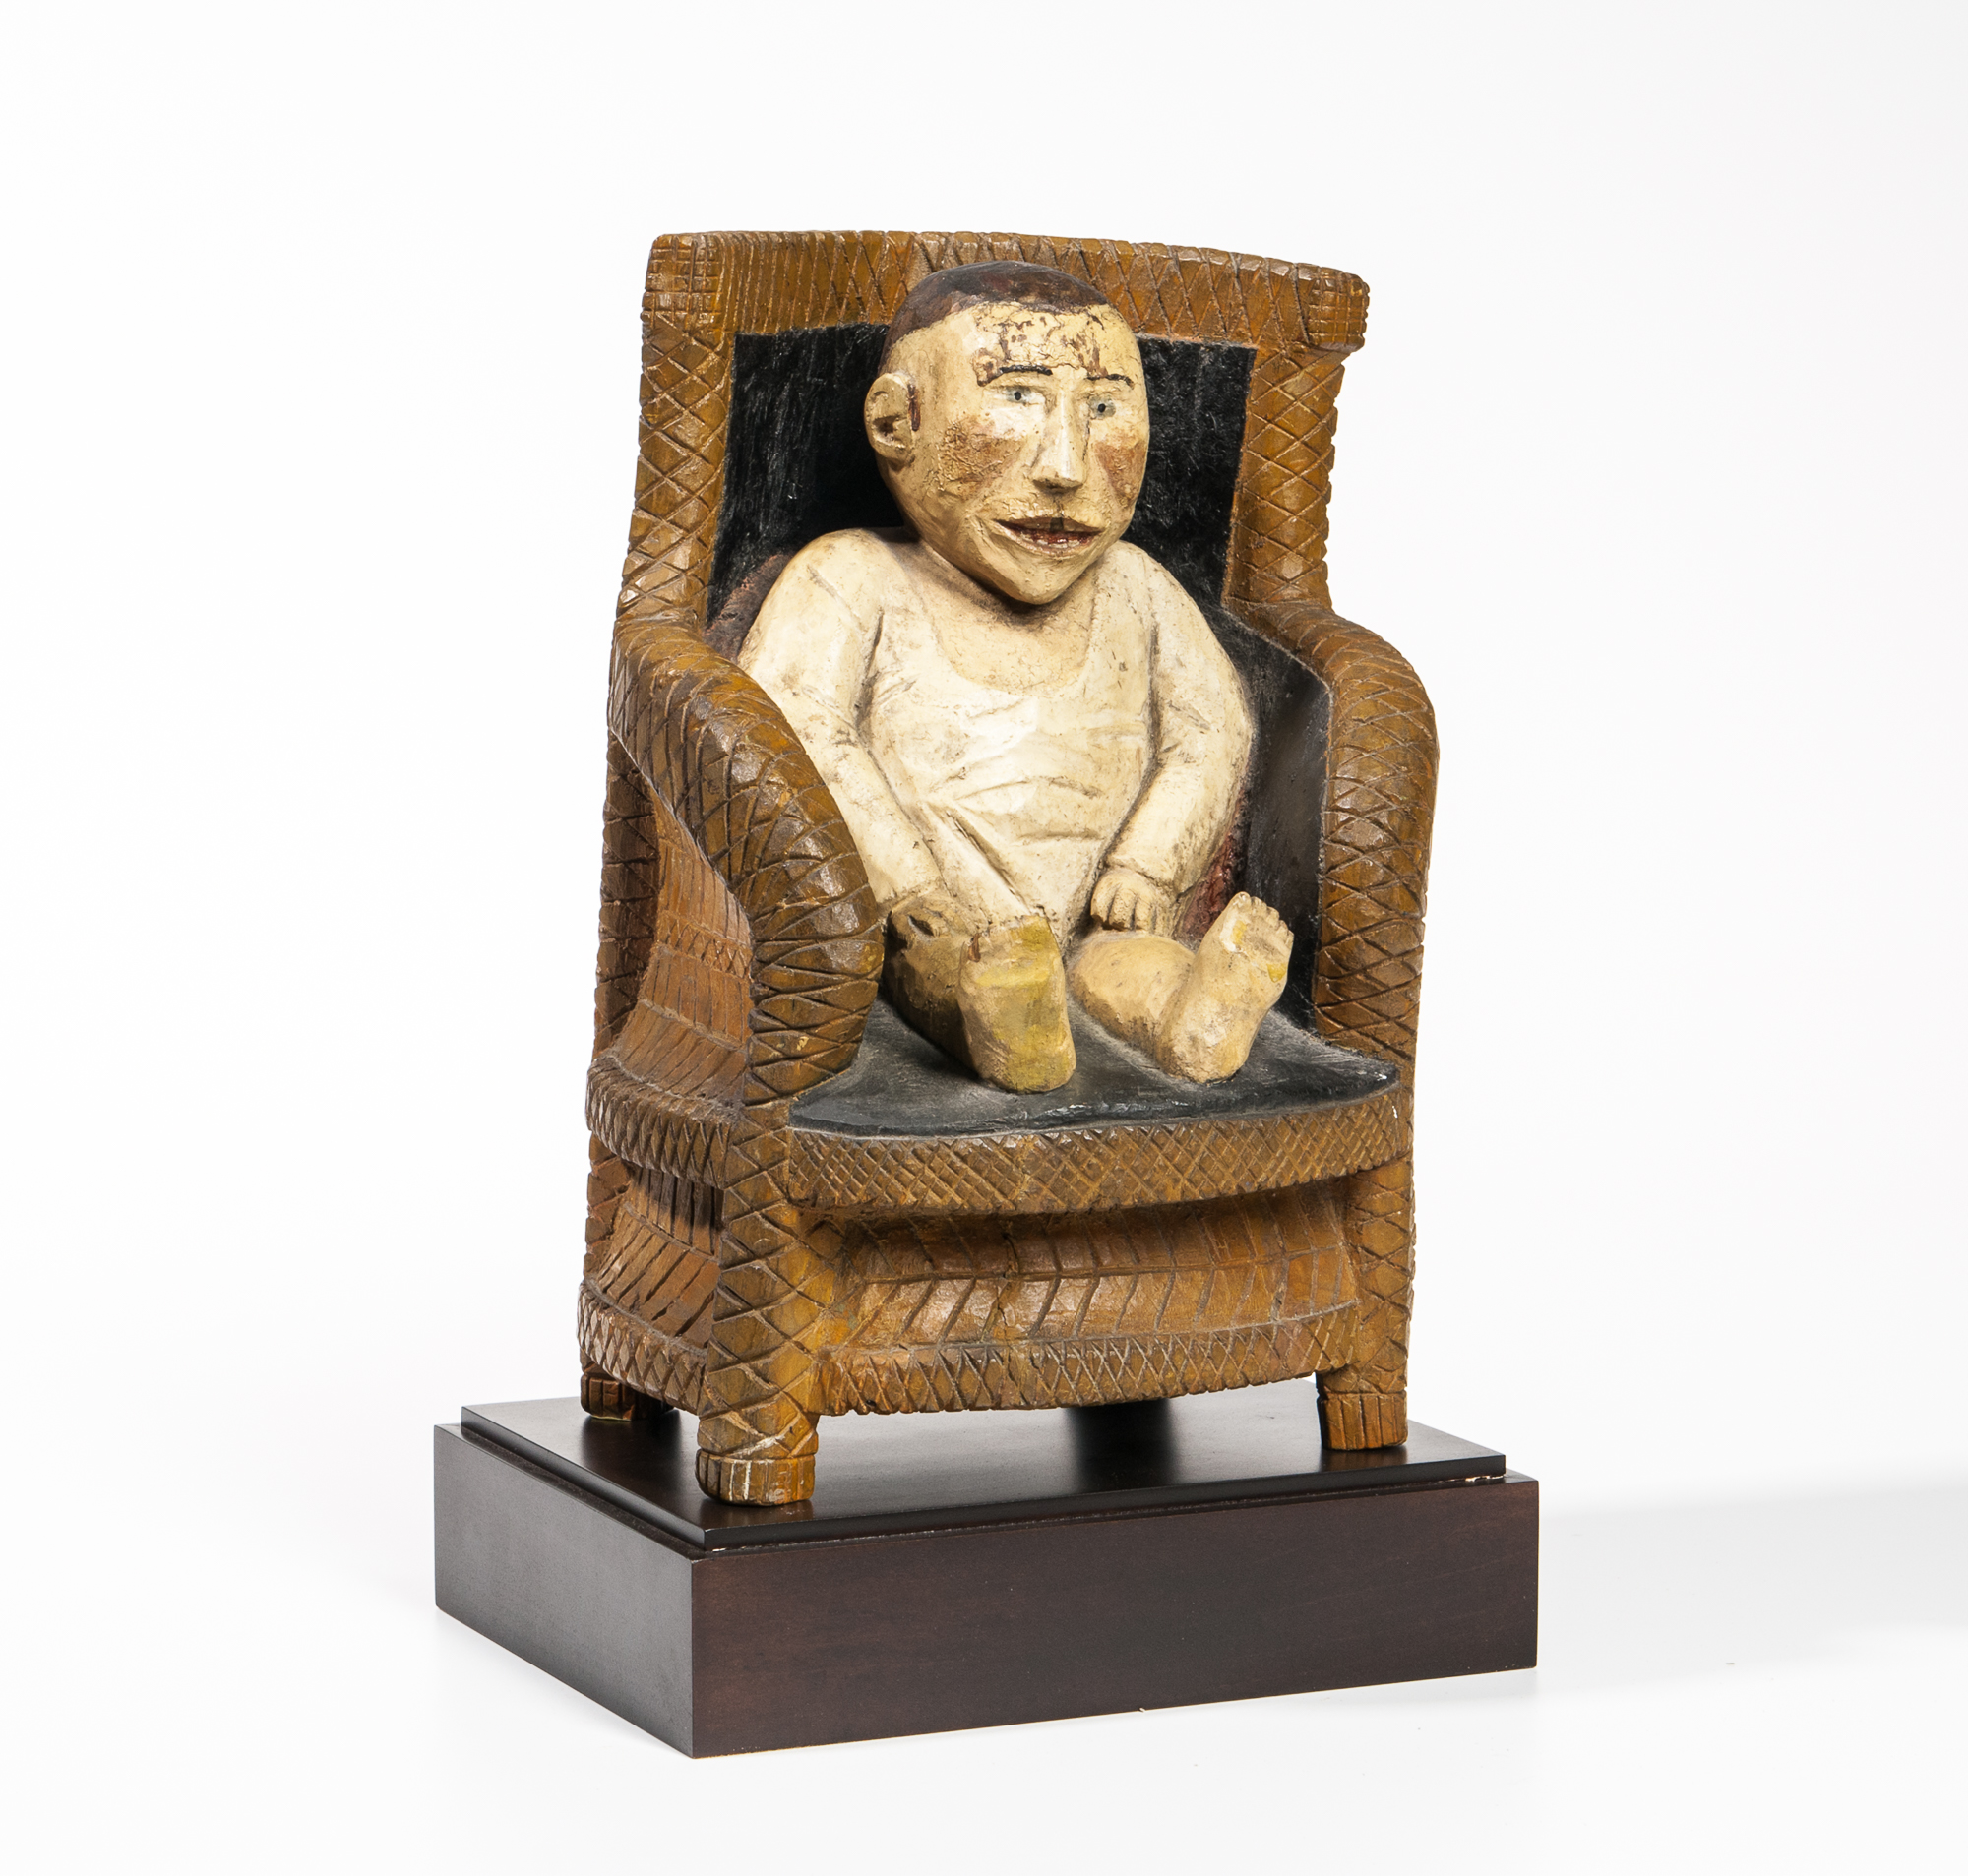 Carved and Painted Baby in a Chair Figure, possible Upstate New York, late 19th century (Lot 64, Estimate: $5,000-7,000)